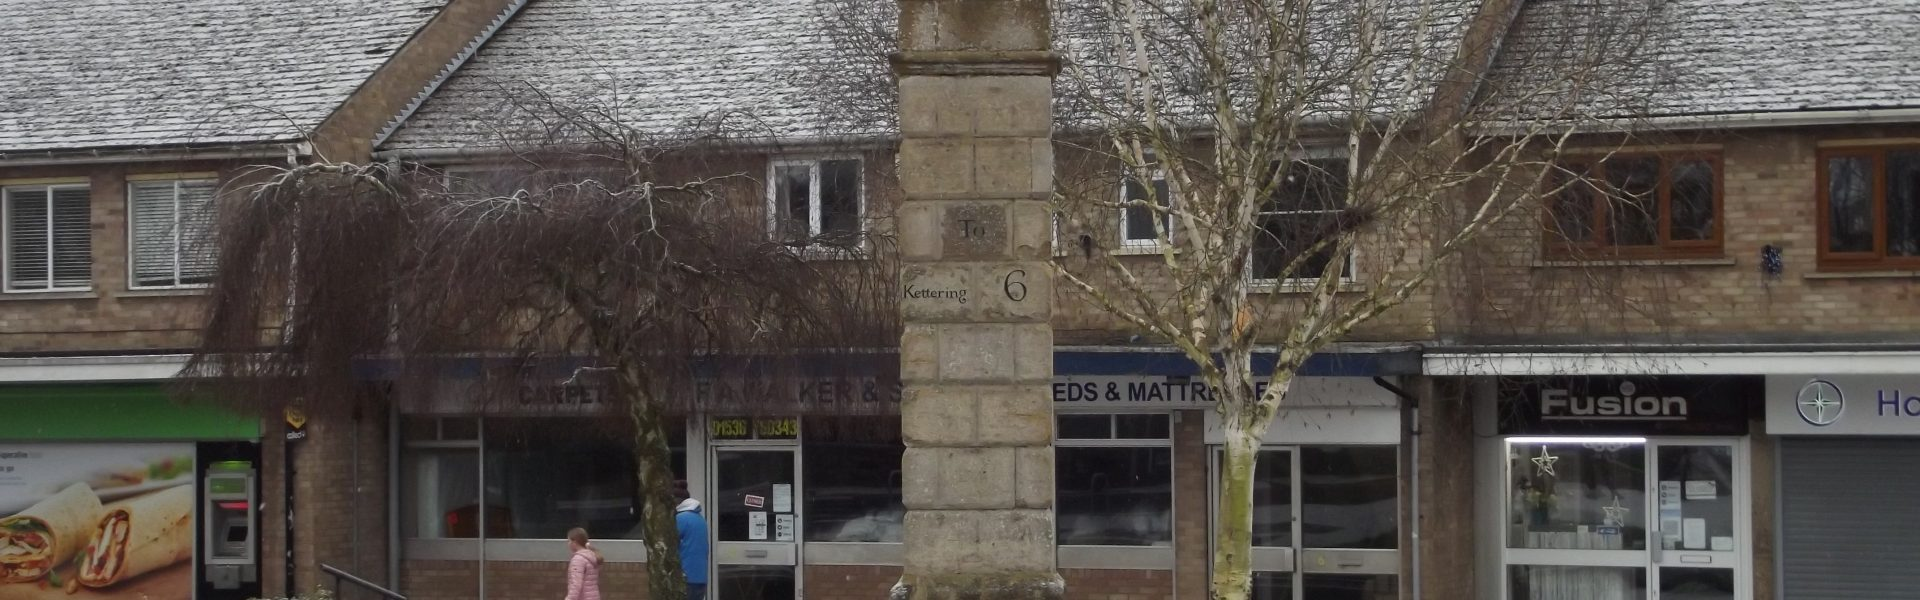 The Town Cross